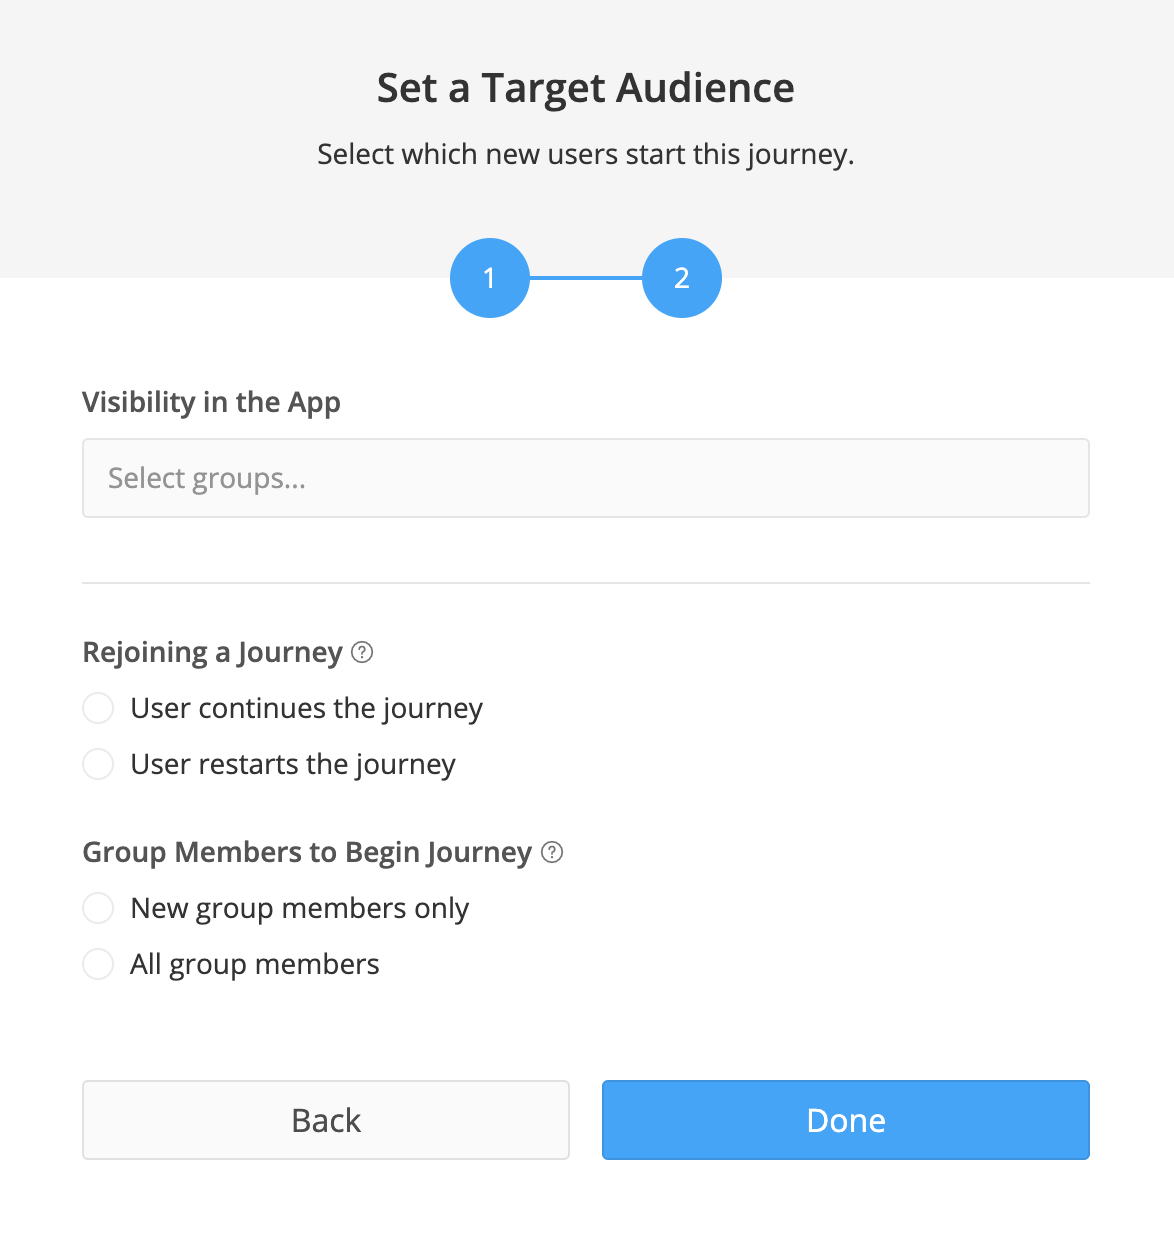 Target_Audience_Group_2.png